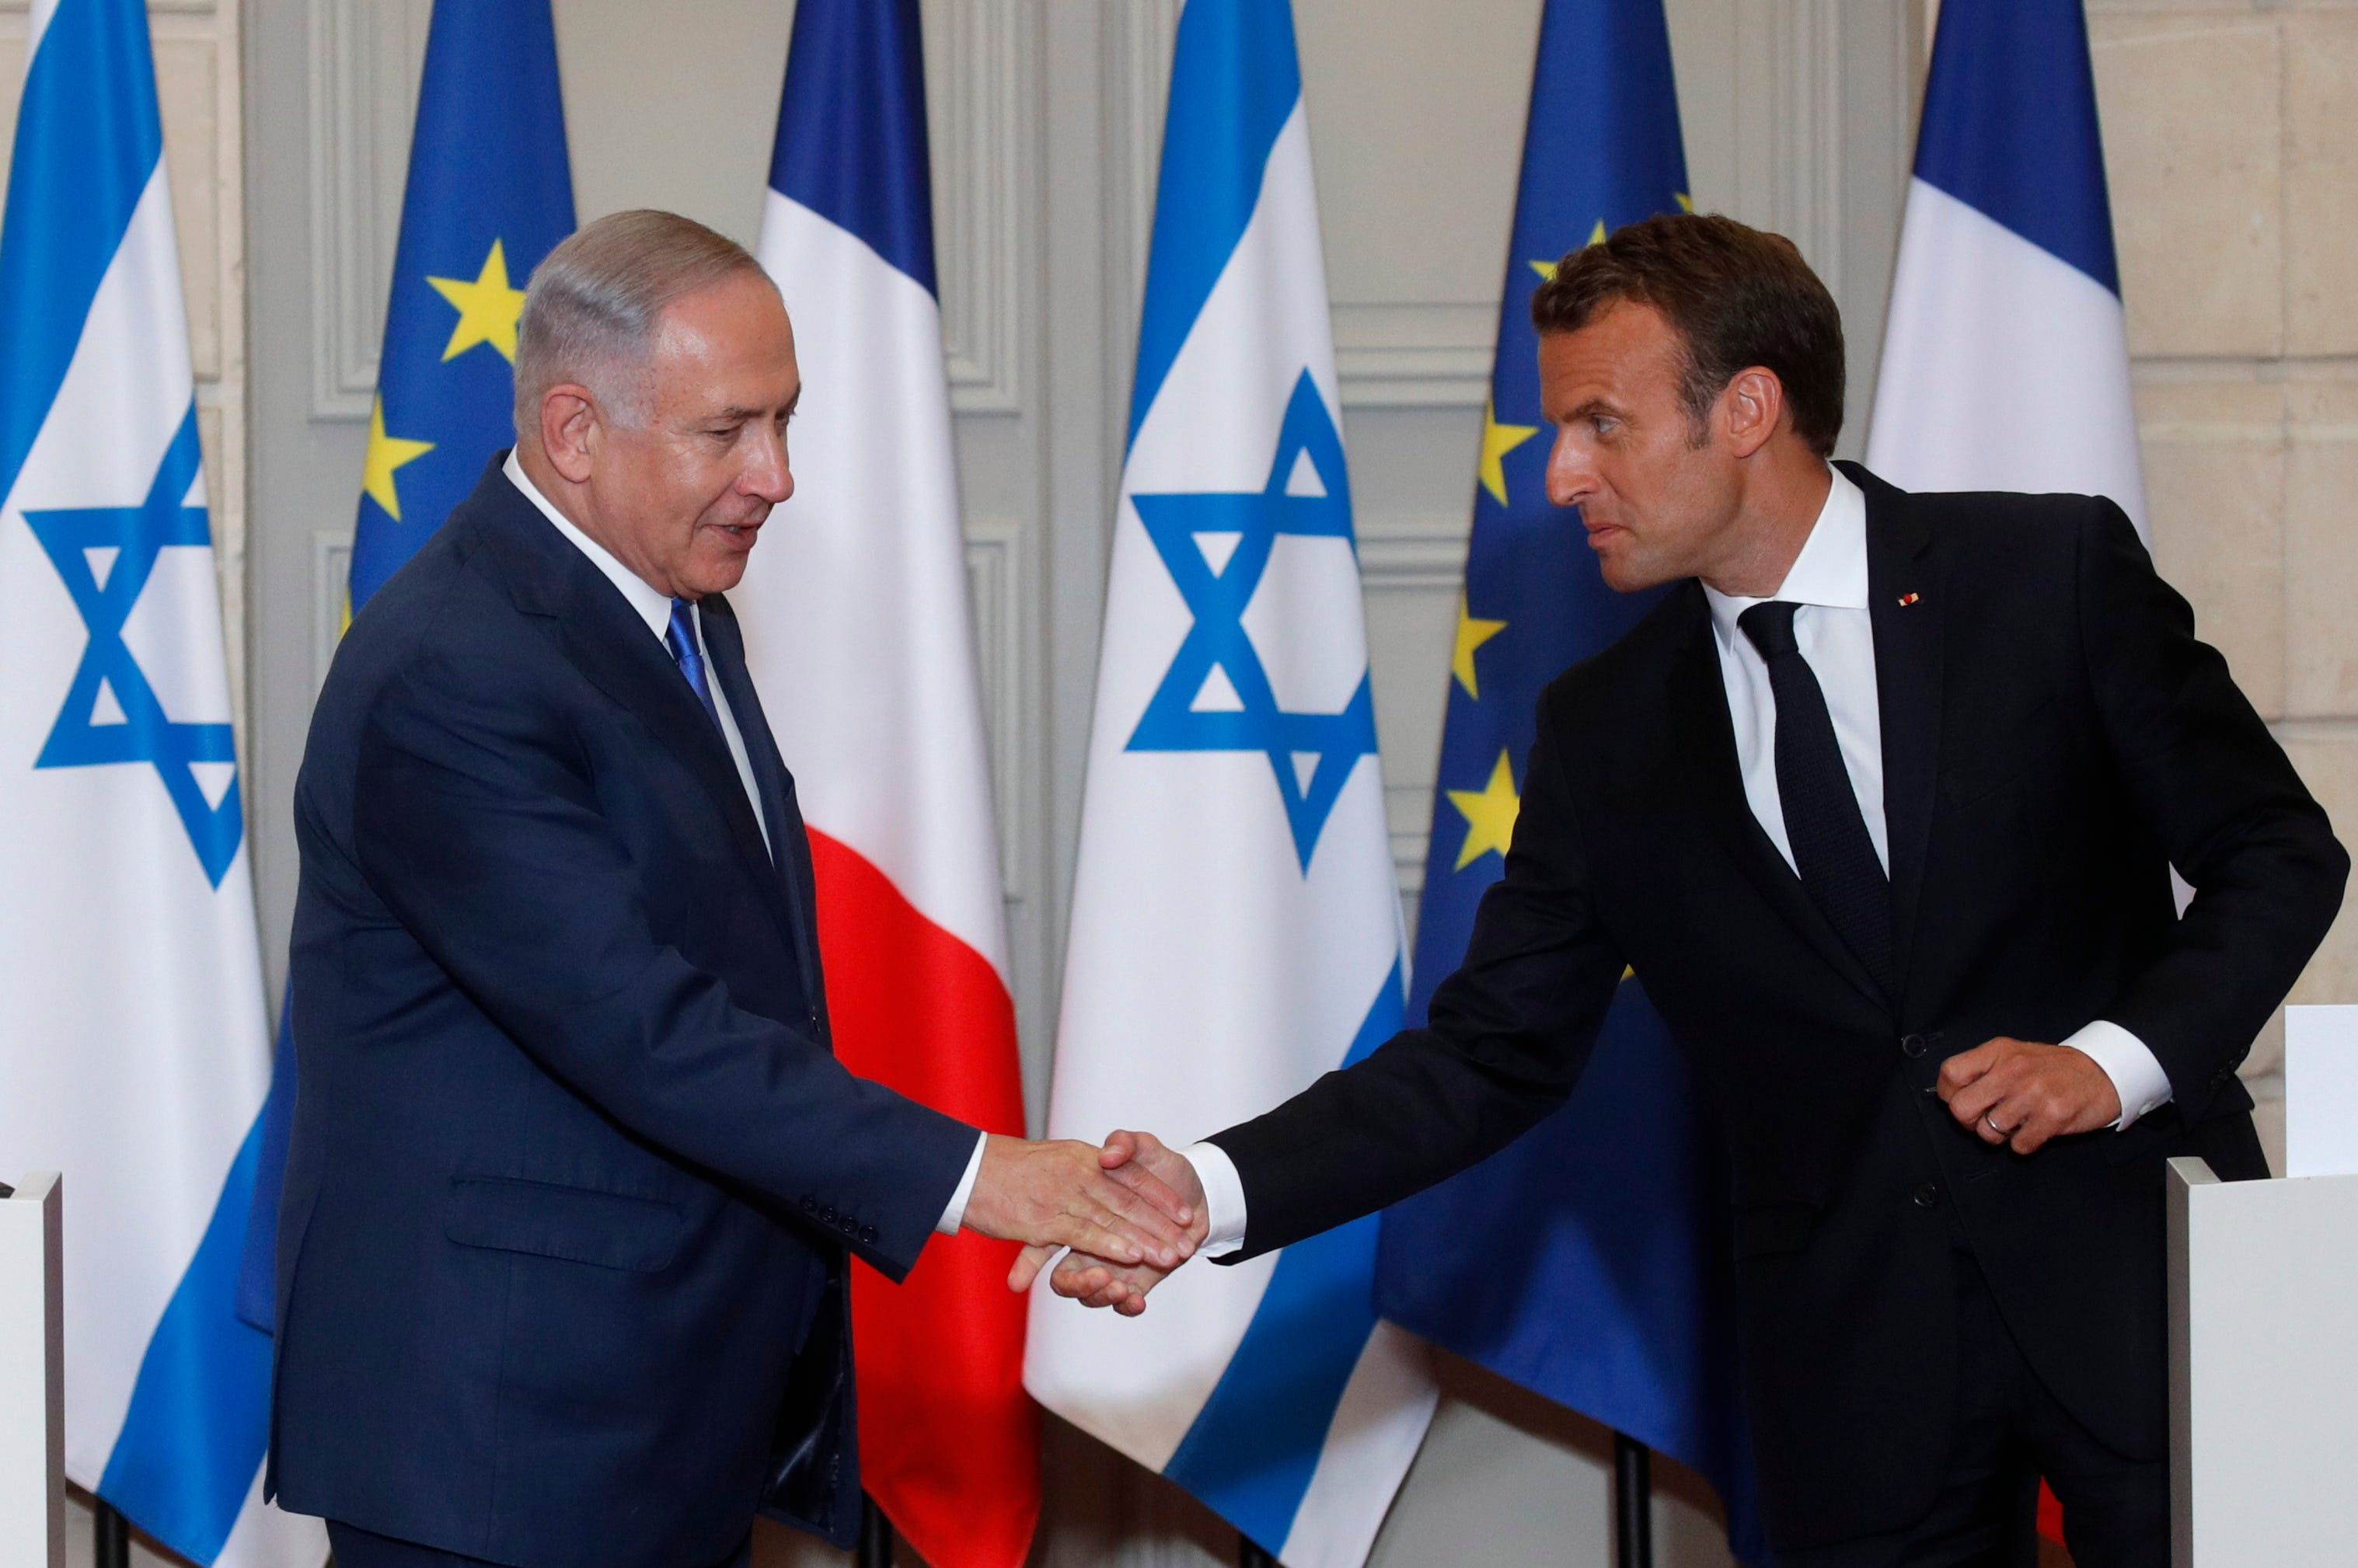 Israel's Netanyahu, France's Macron agree to disagree on Iran nuclear deal